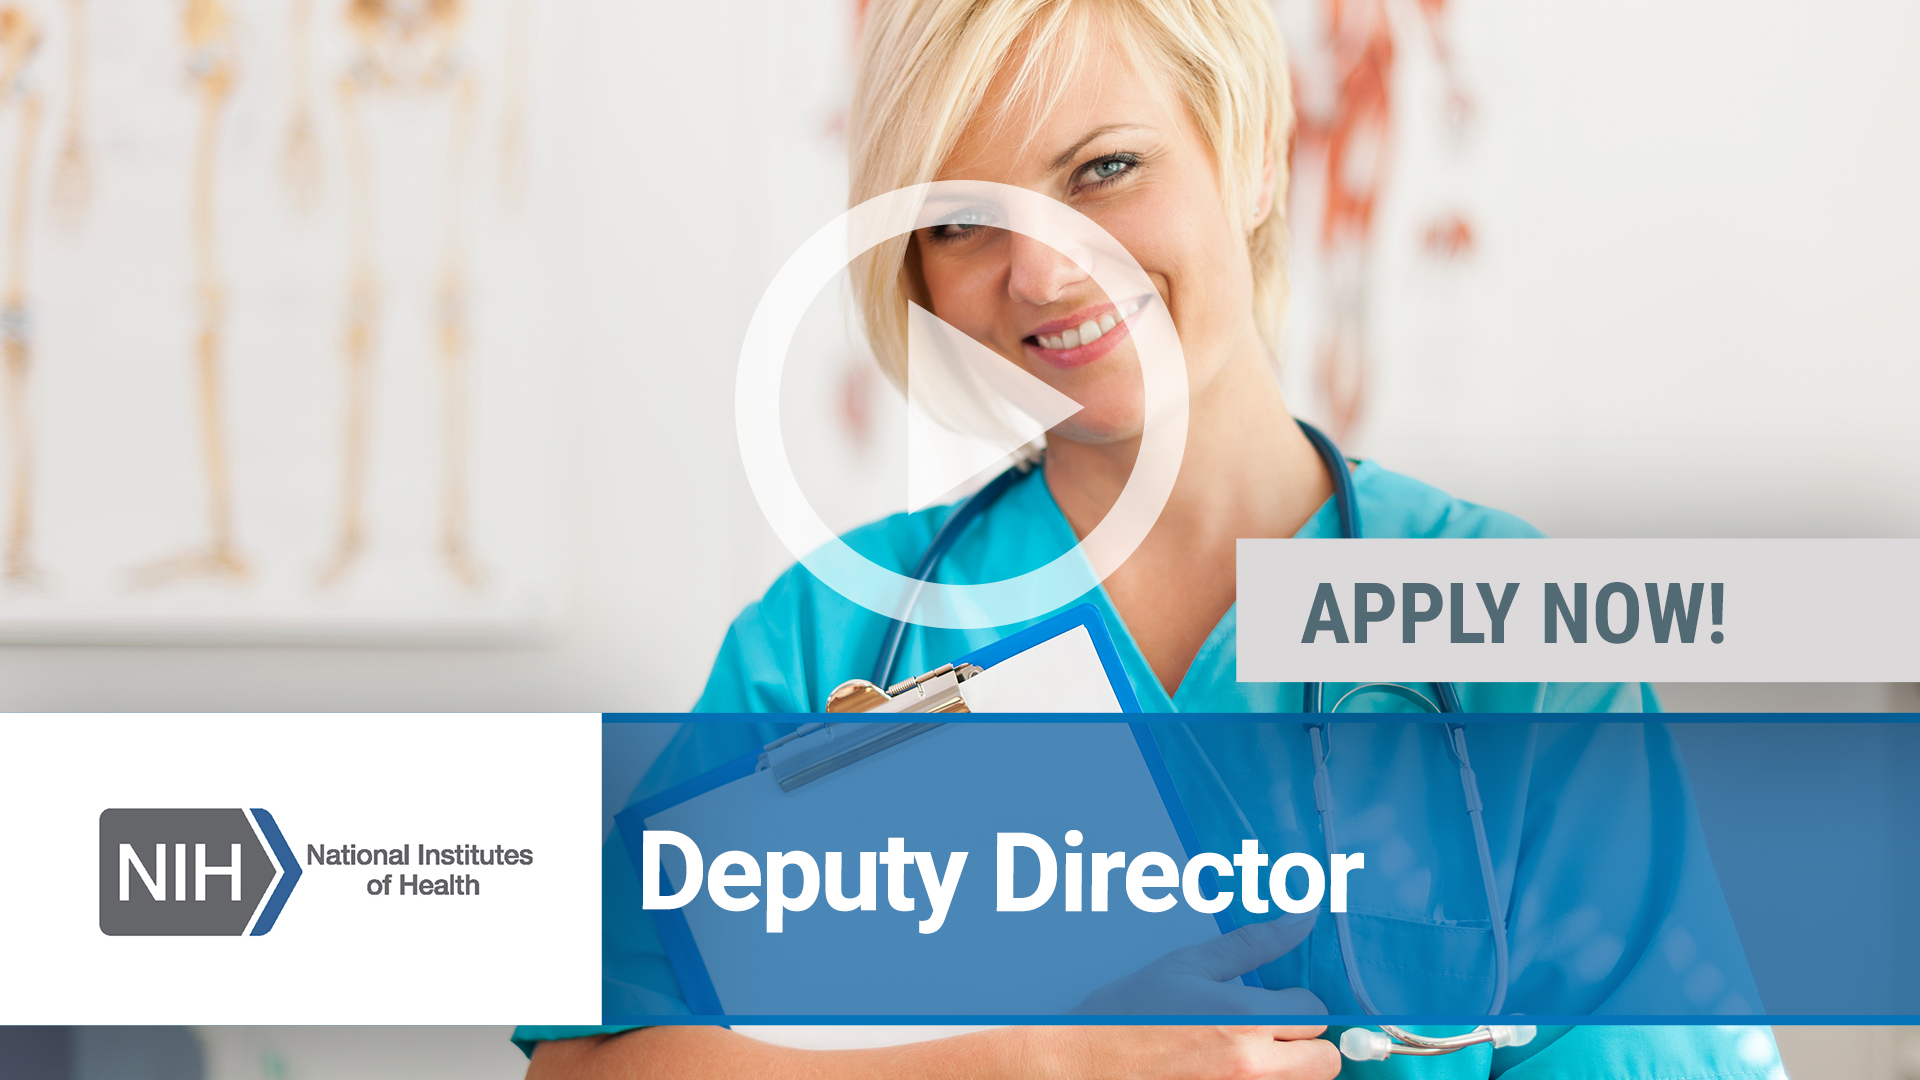 Watch our careers video for available job opening Deputy Director for the National Institute of Nur in Maryland